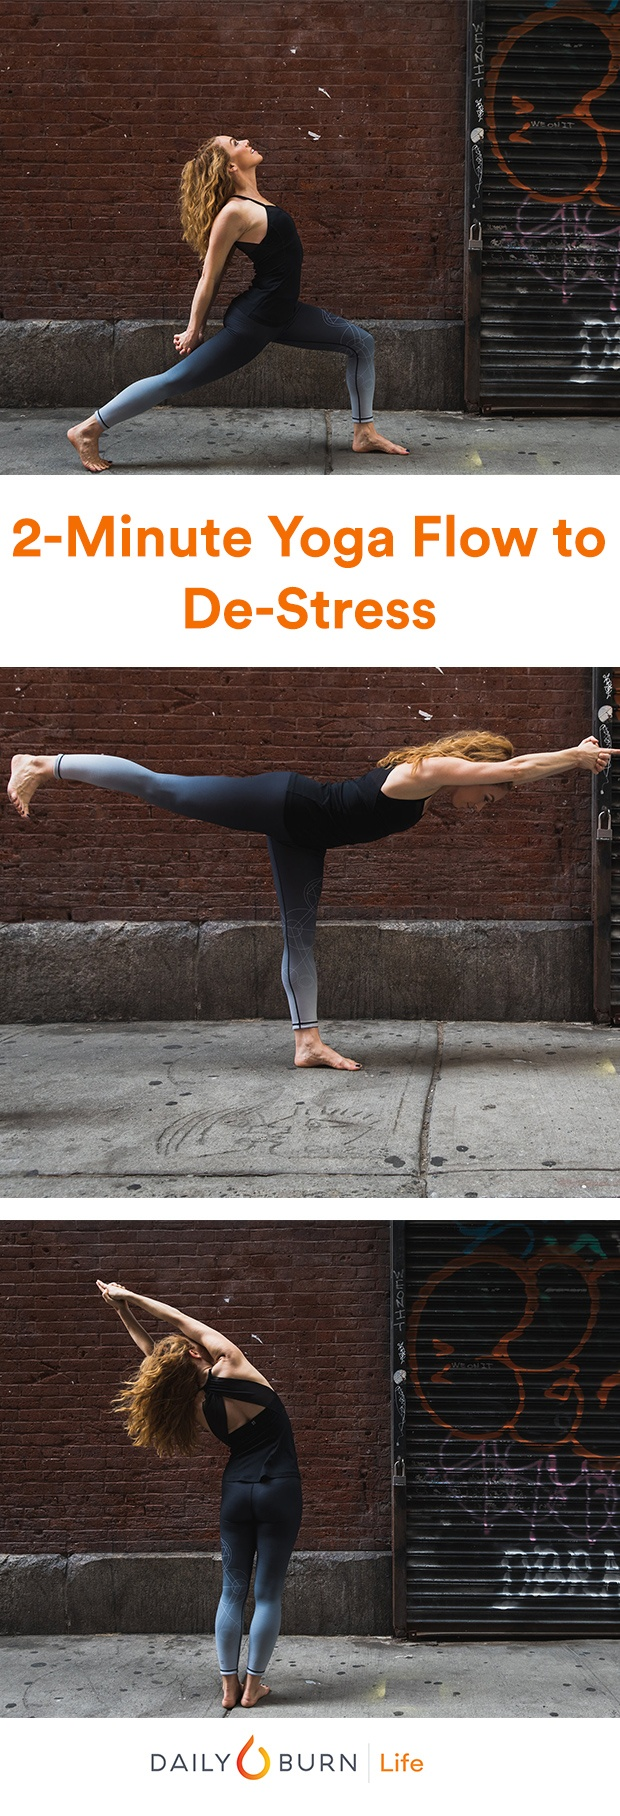 2-Minute Yoga Flow to Stretch and De-Stress